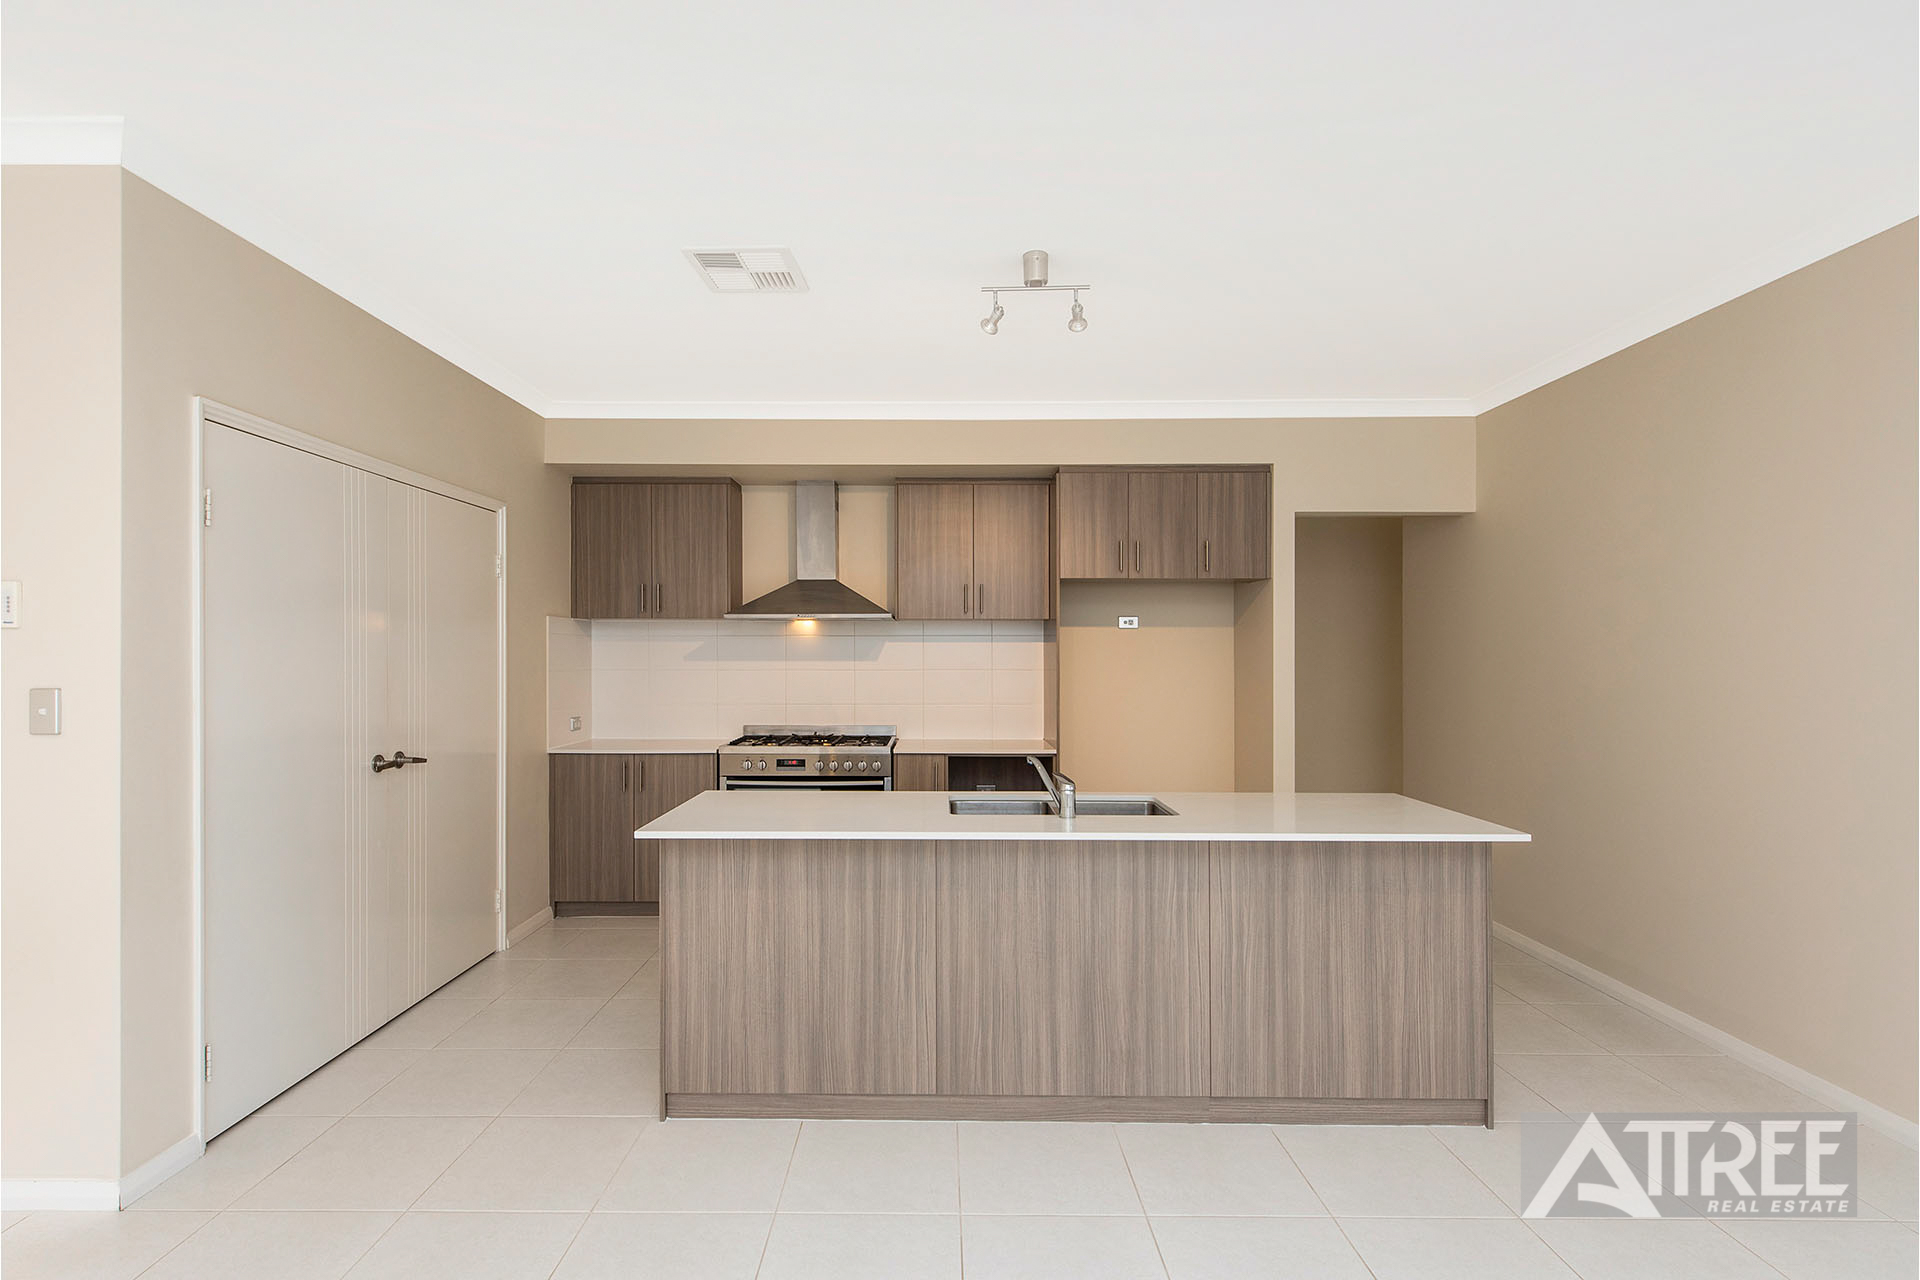 Property for sale in SOUTHERN RIVER, 15 Bradstocks Grove : Attree Real Estate